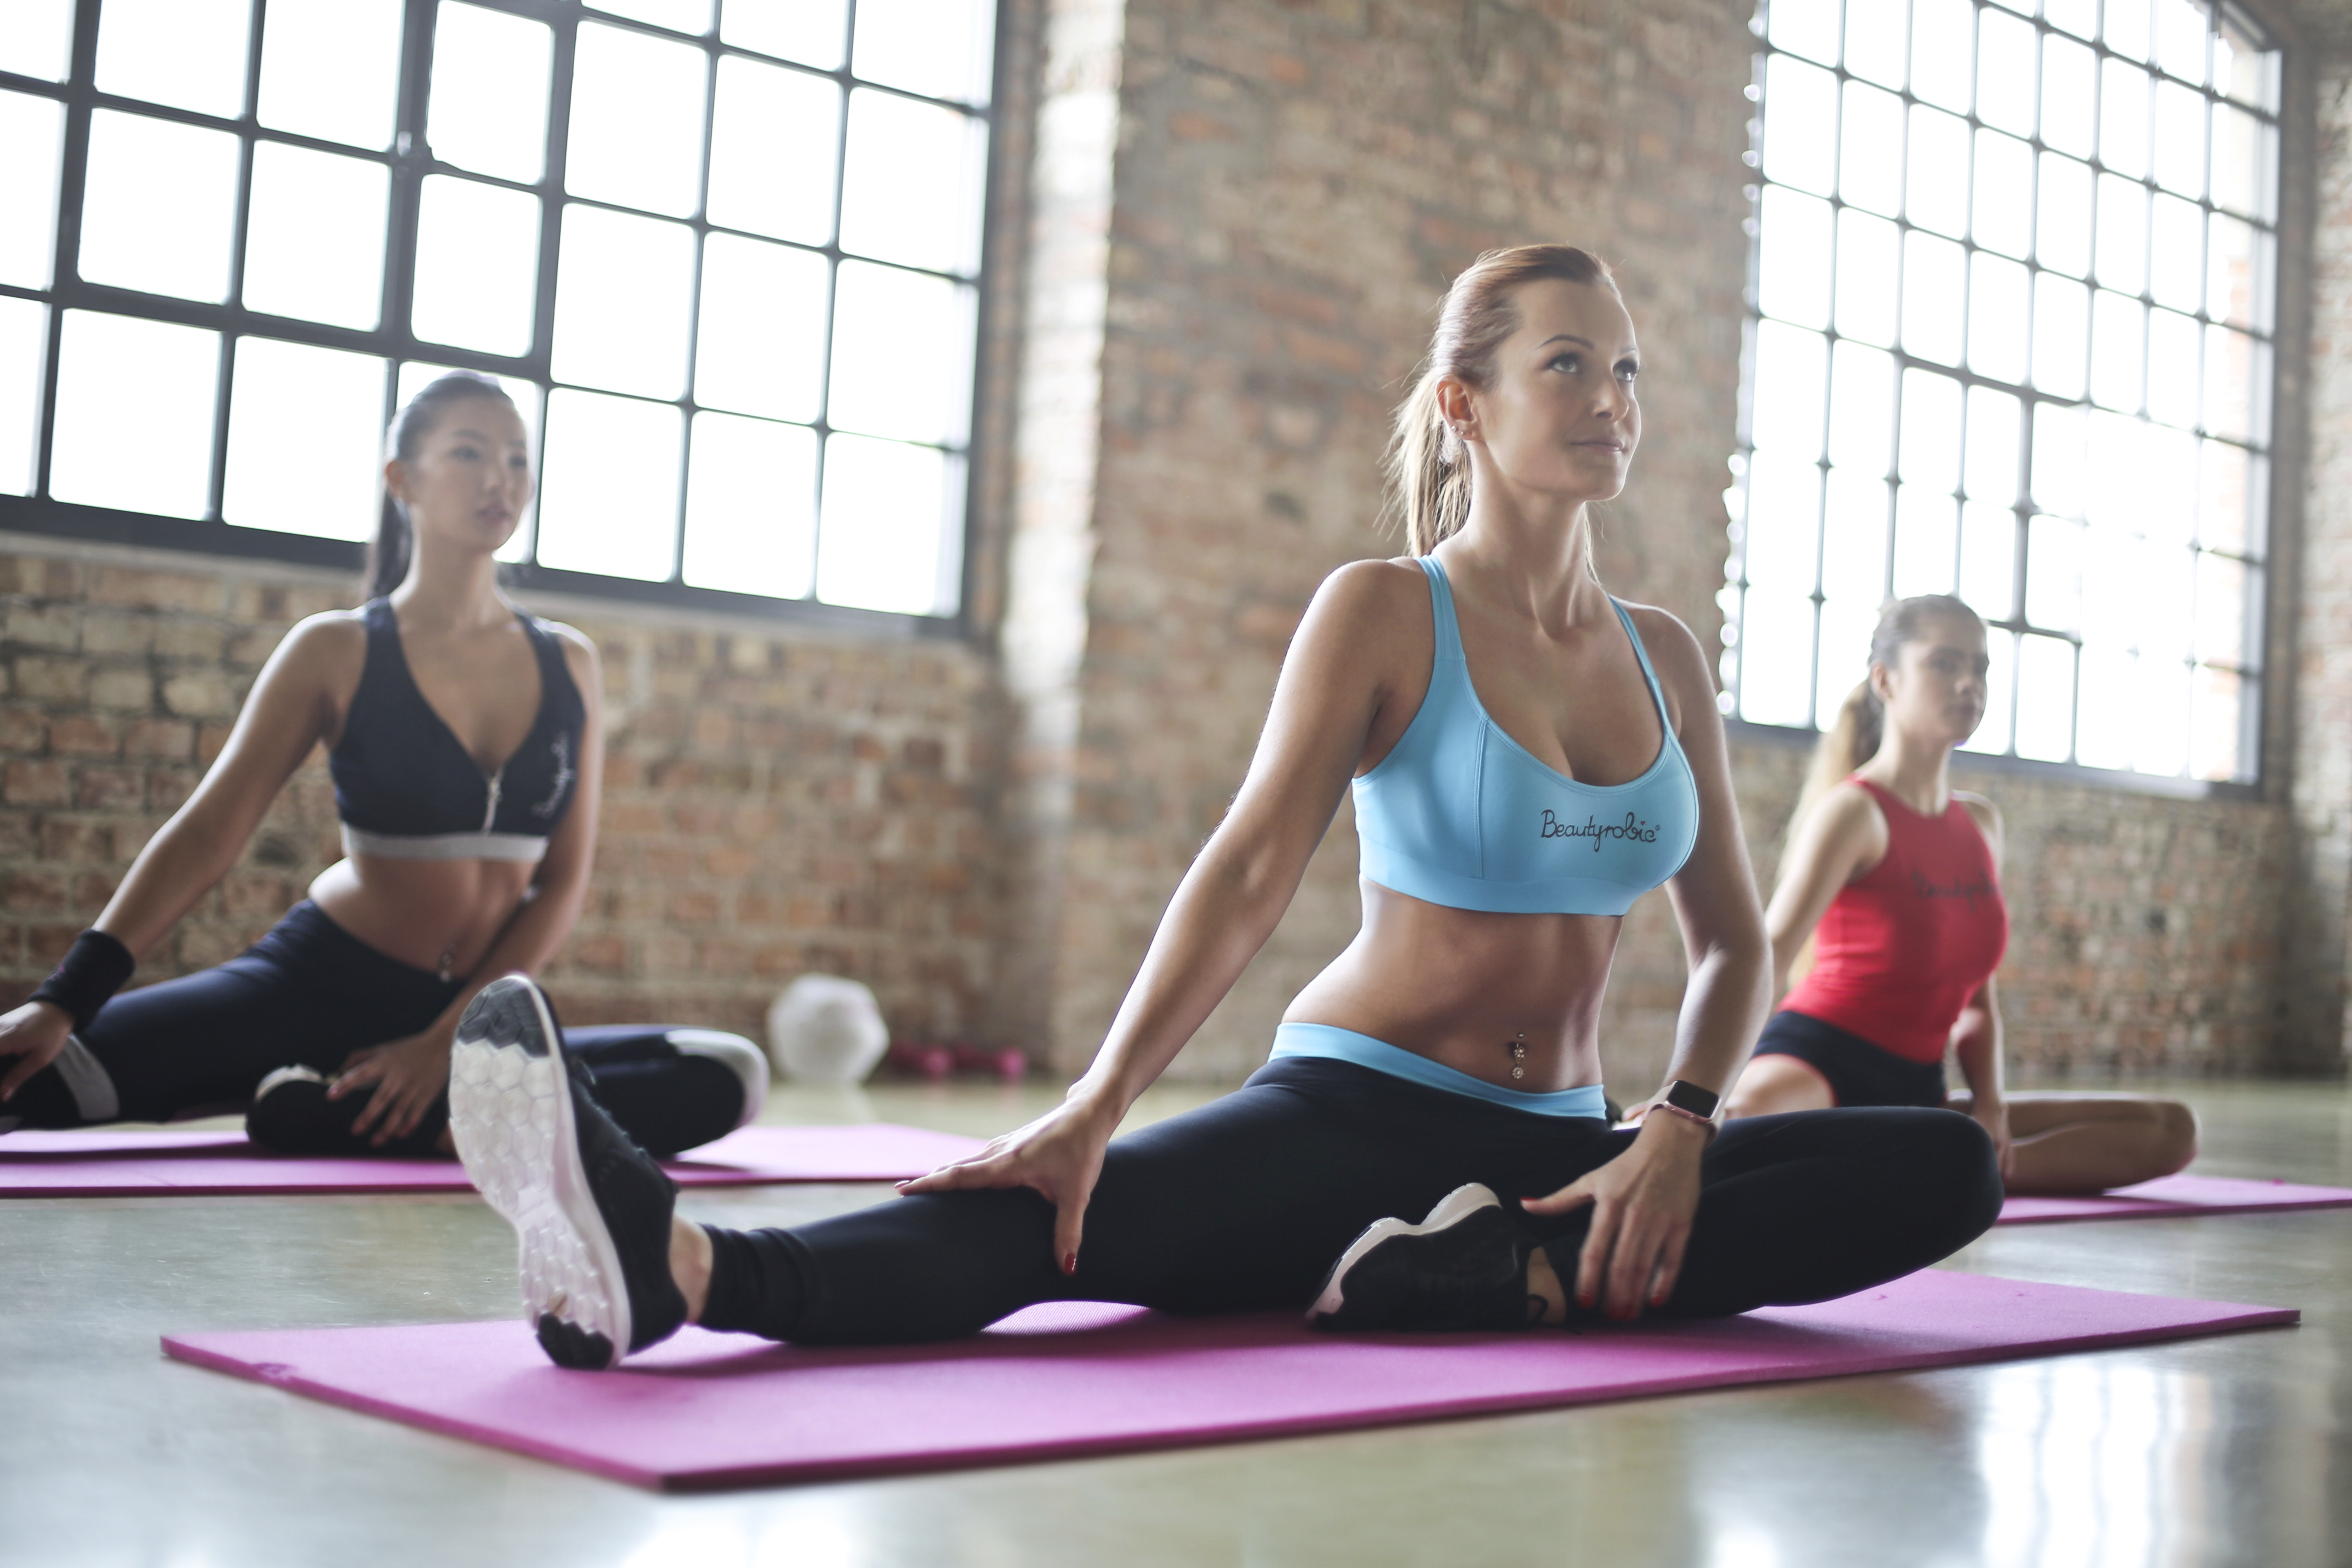 Canva - Three Woman Doing an Exercises